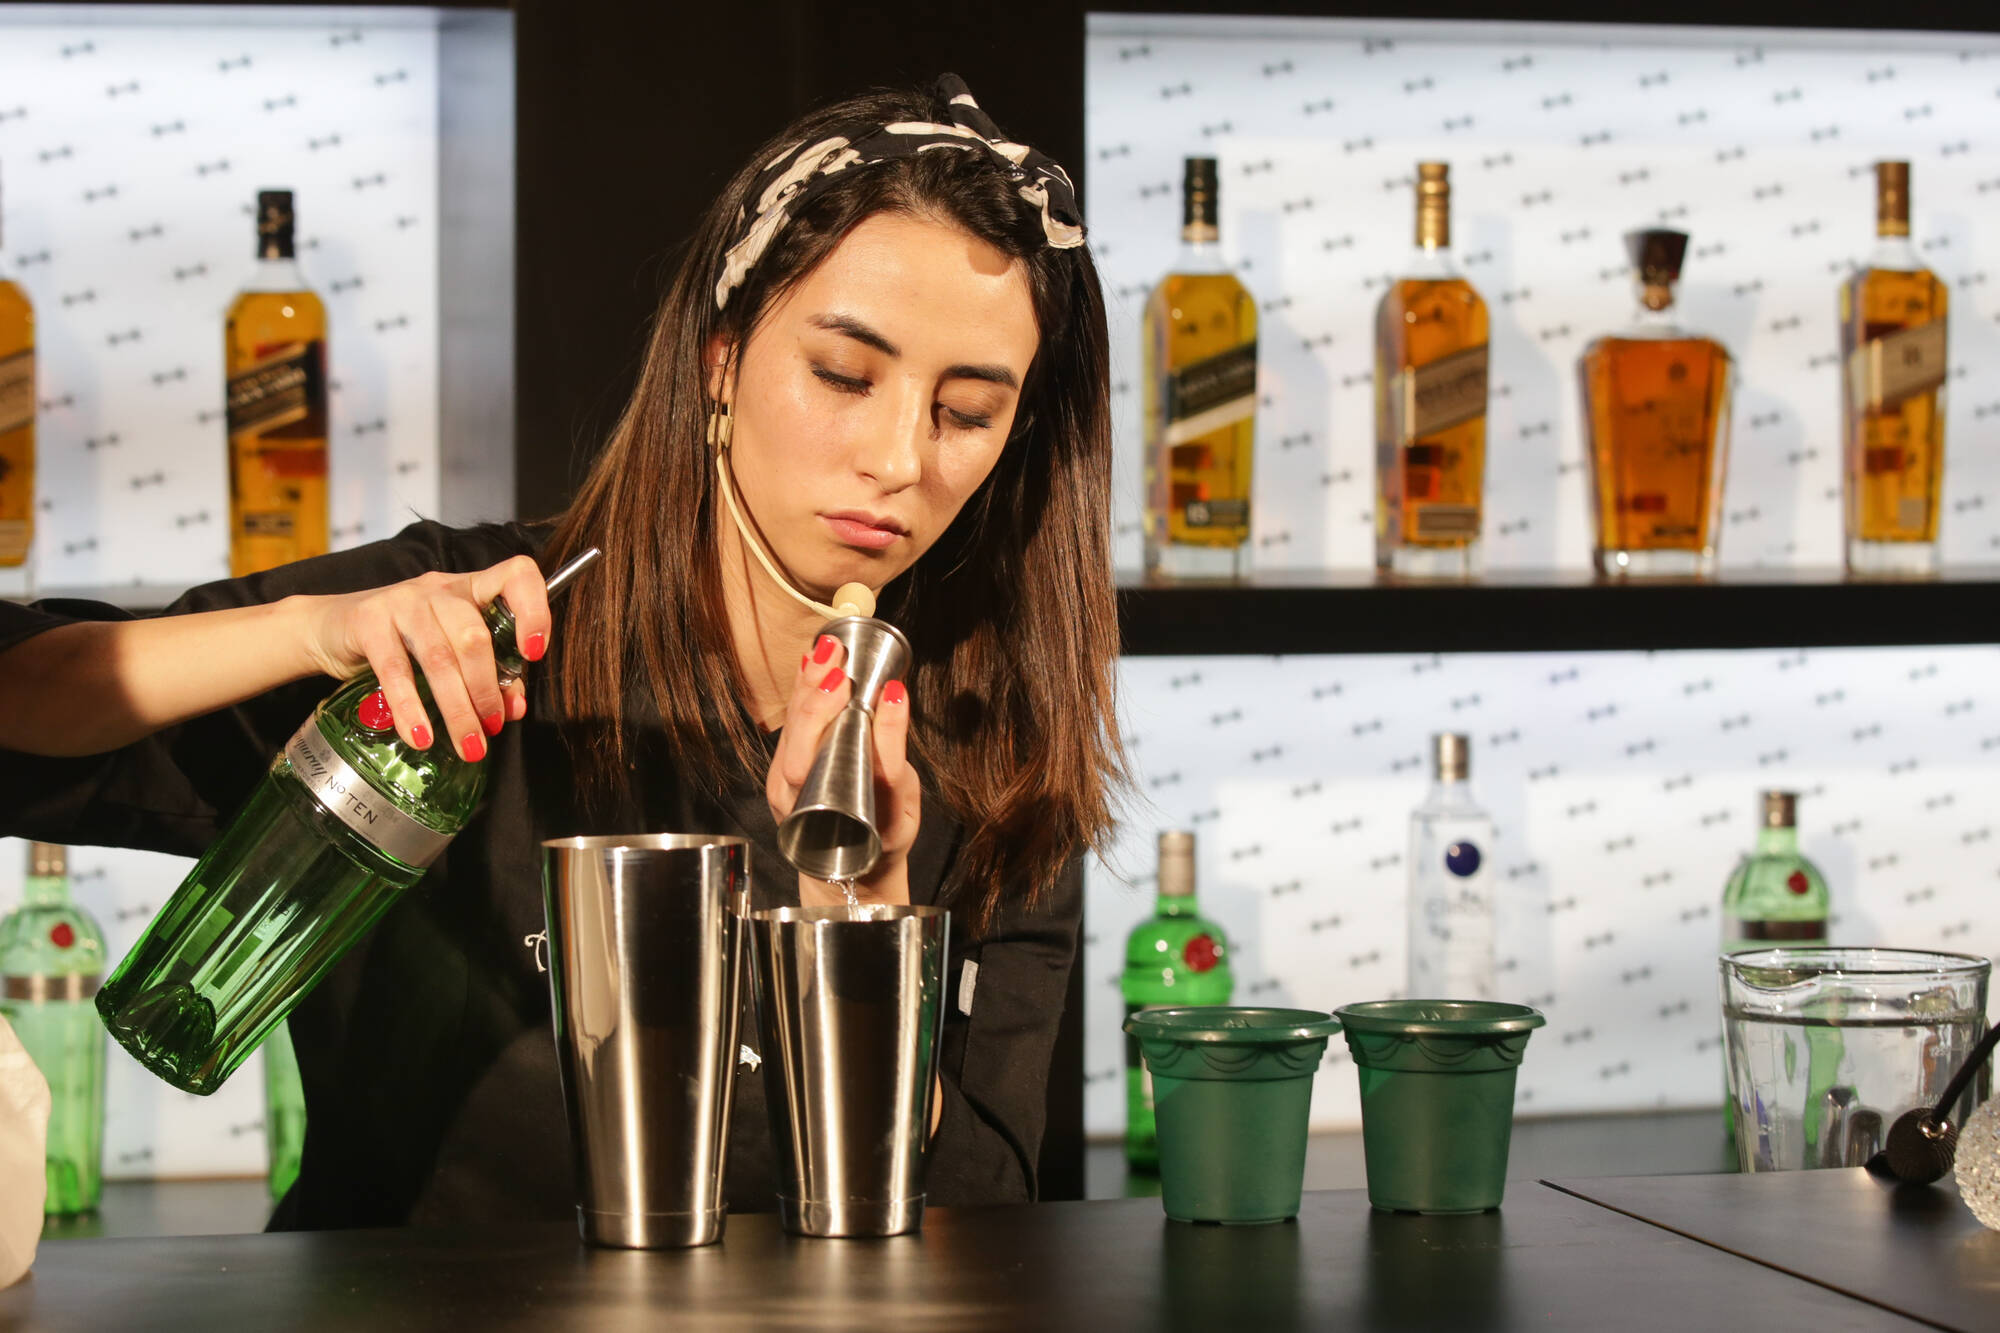 World Class Competition 2019: Carla Constanza gana en Chile